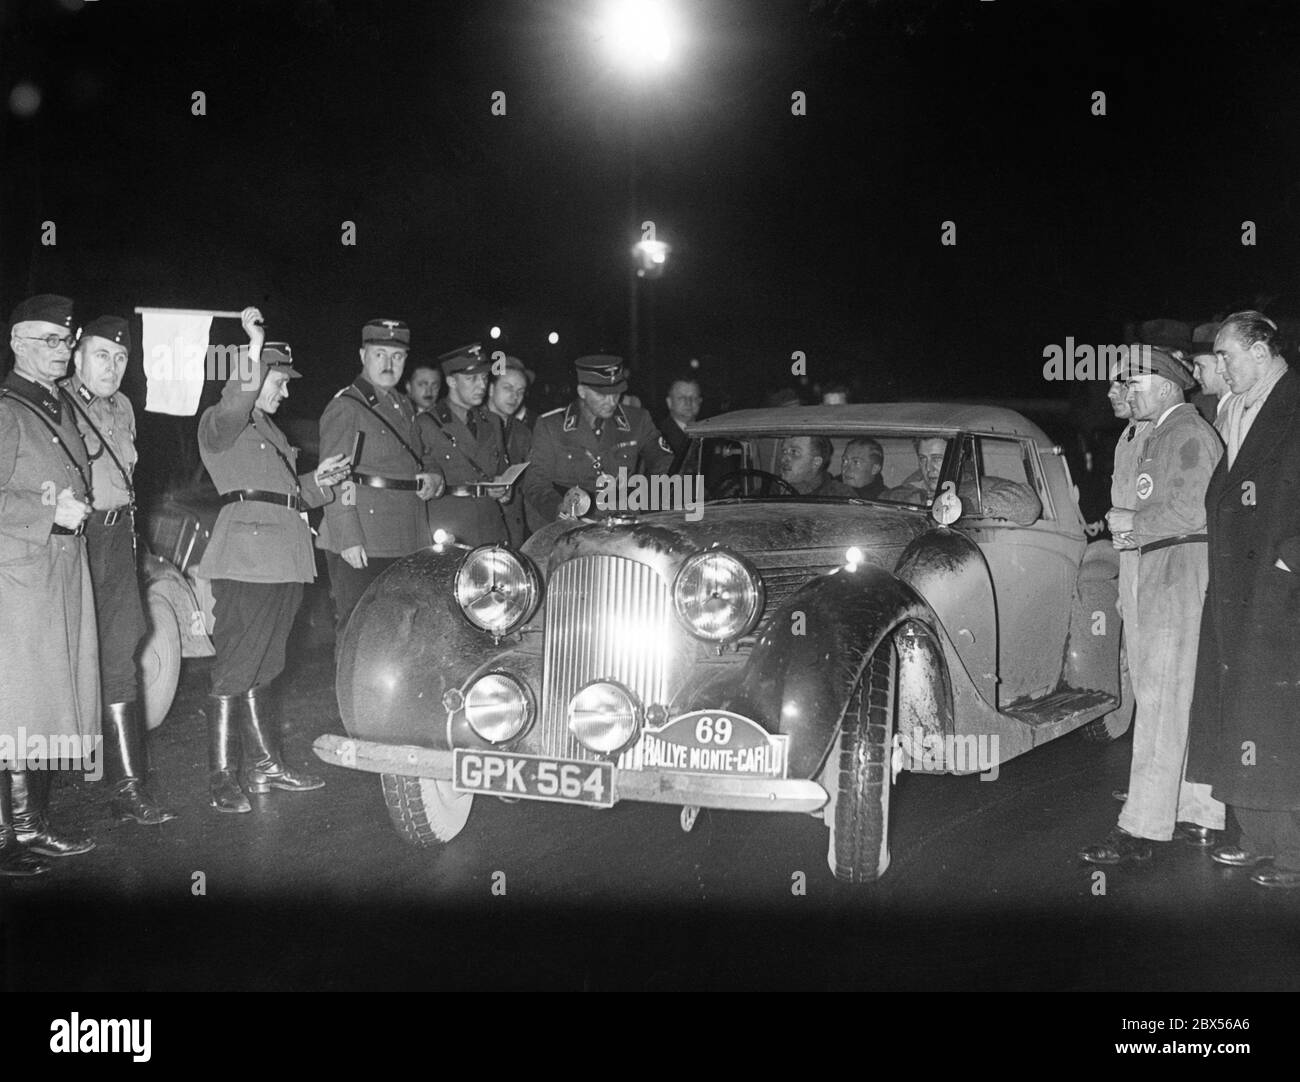 A Polish participant of the Monte Carlo Rally of 1939, which began in Tallinn, Estonia, will leave from the Autohotel control station on Kaiserdamm in Berlin. Stock Photo